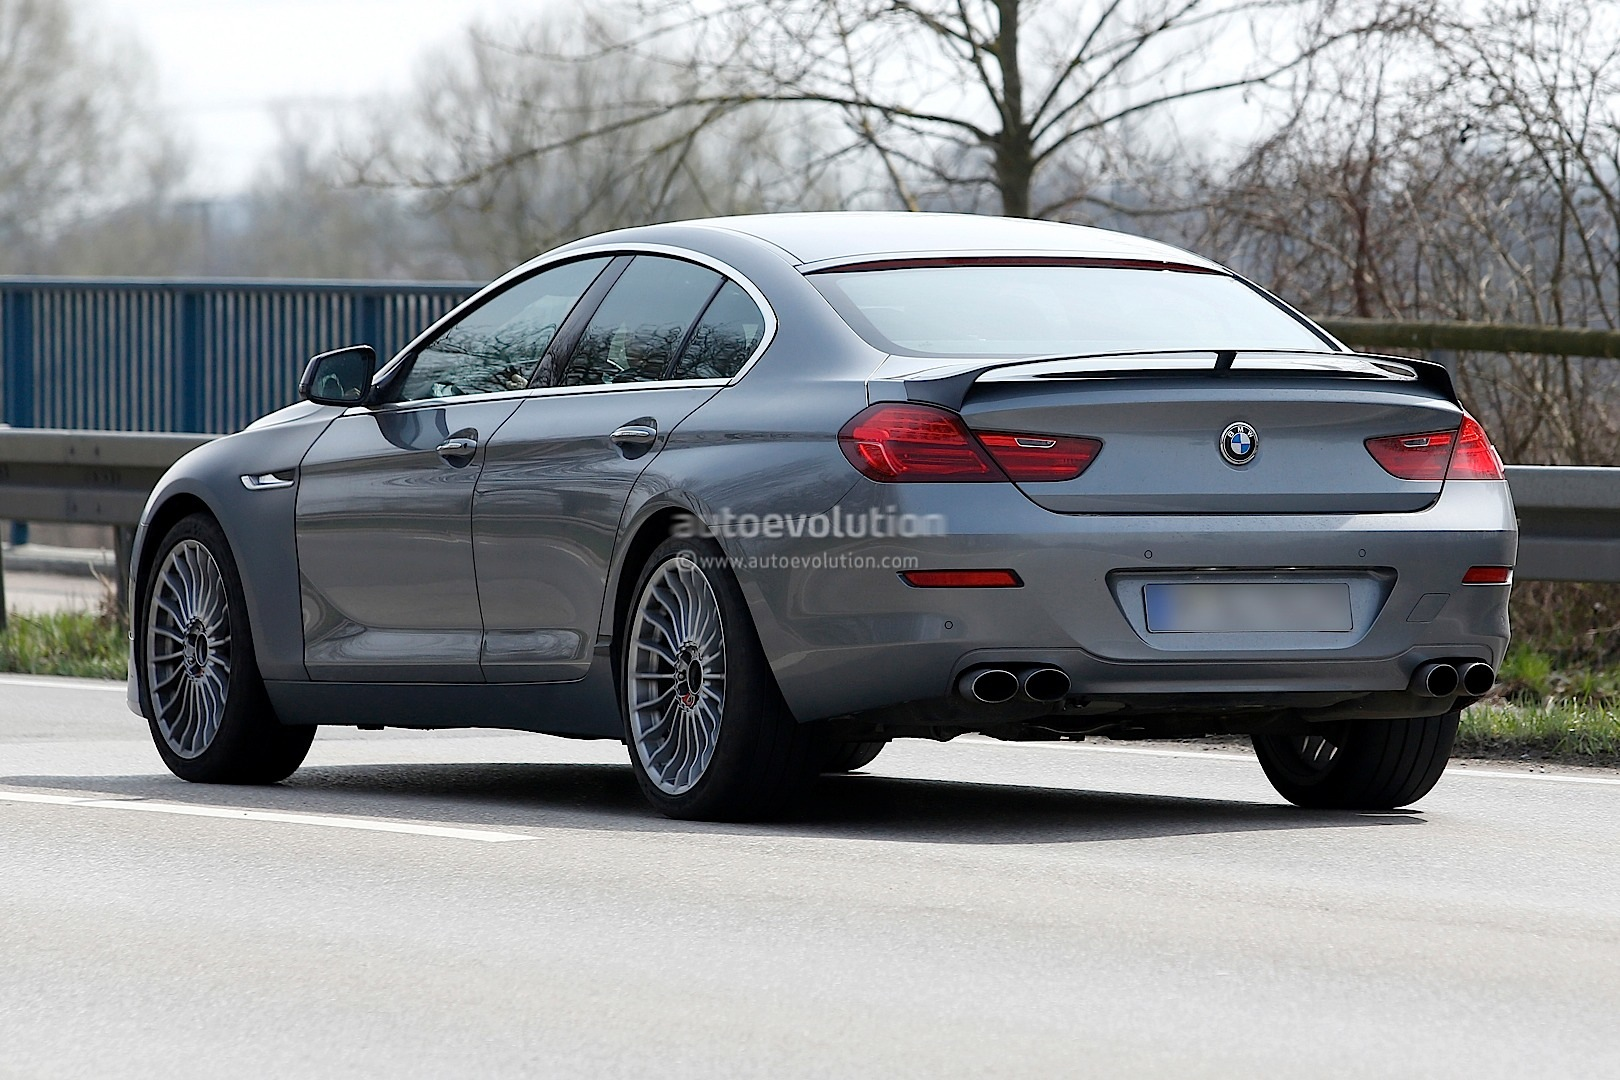 Spyshots Alpina B Biturbo Gran Coupe Autoevolution - Bmw alpina b6 biturbo price